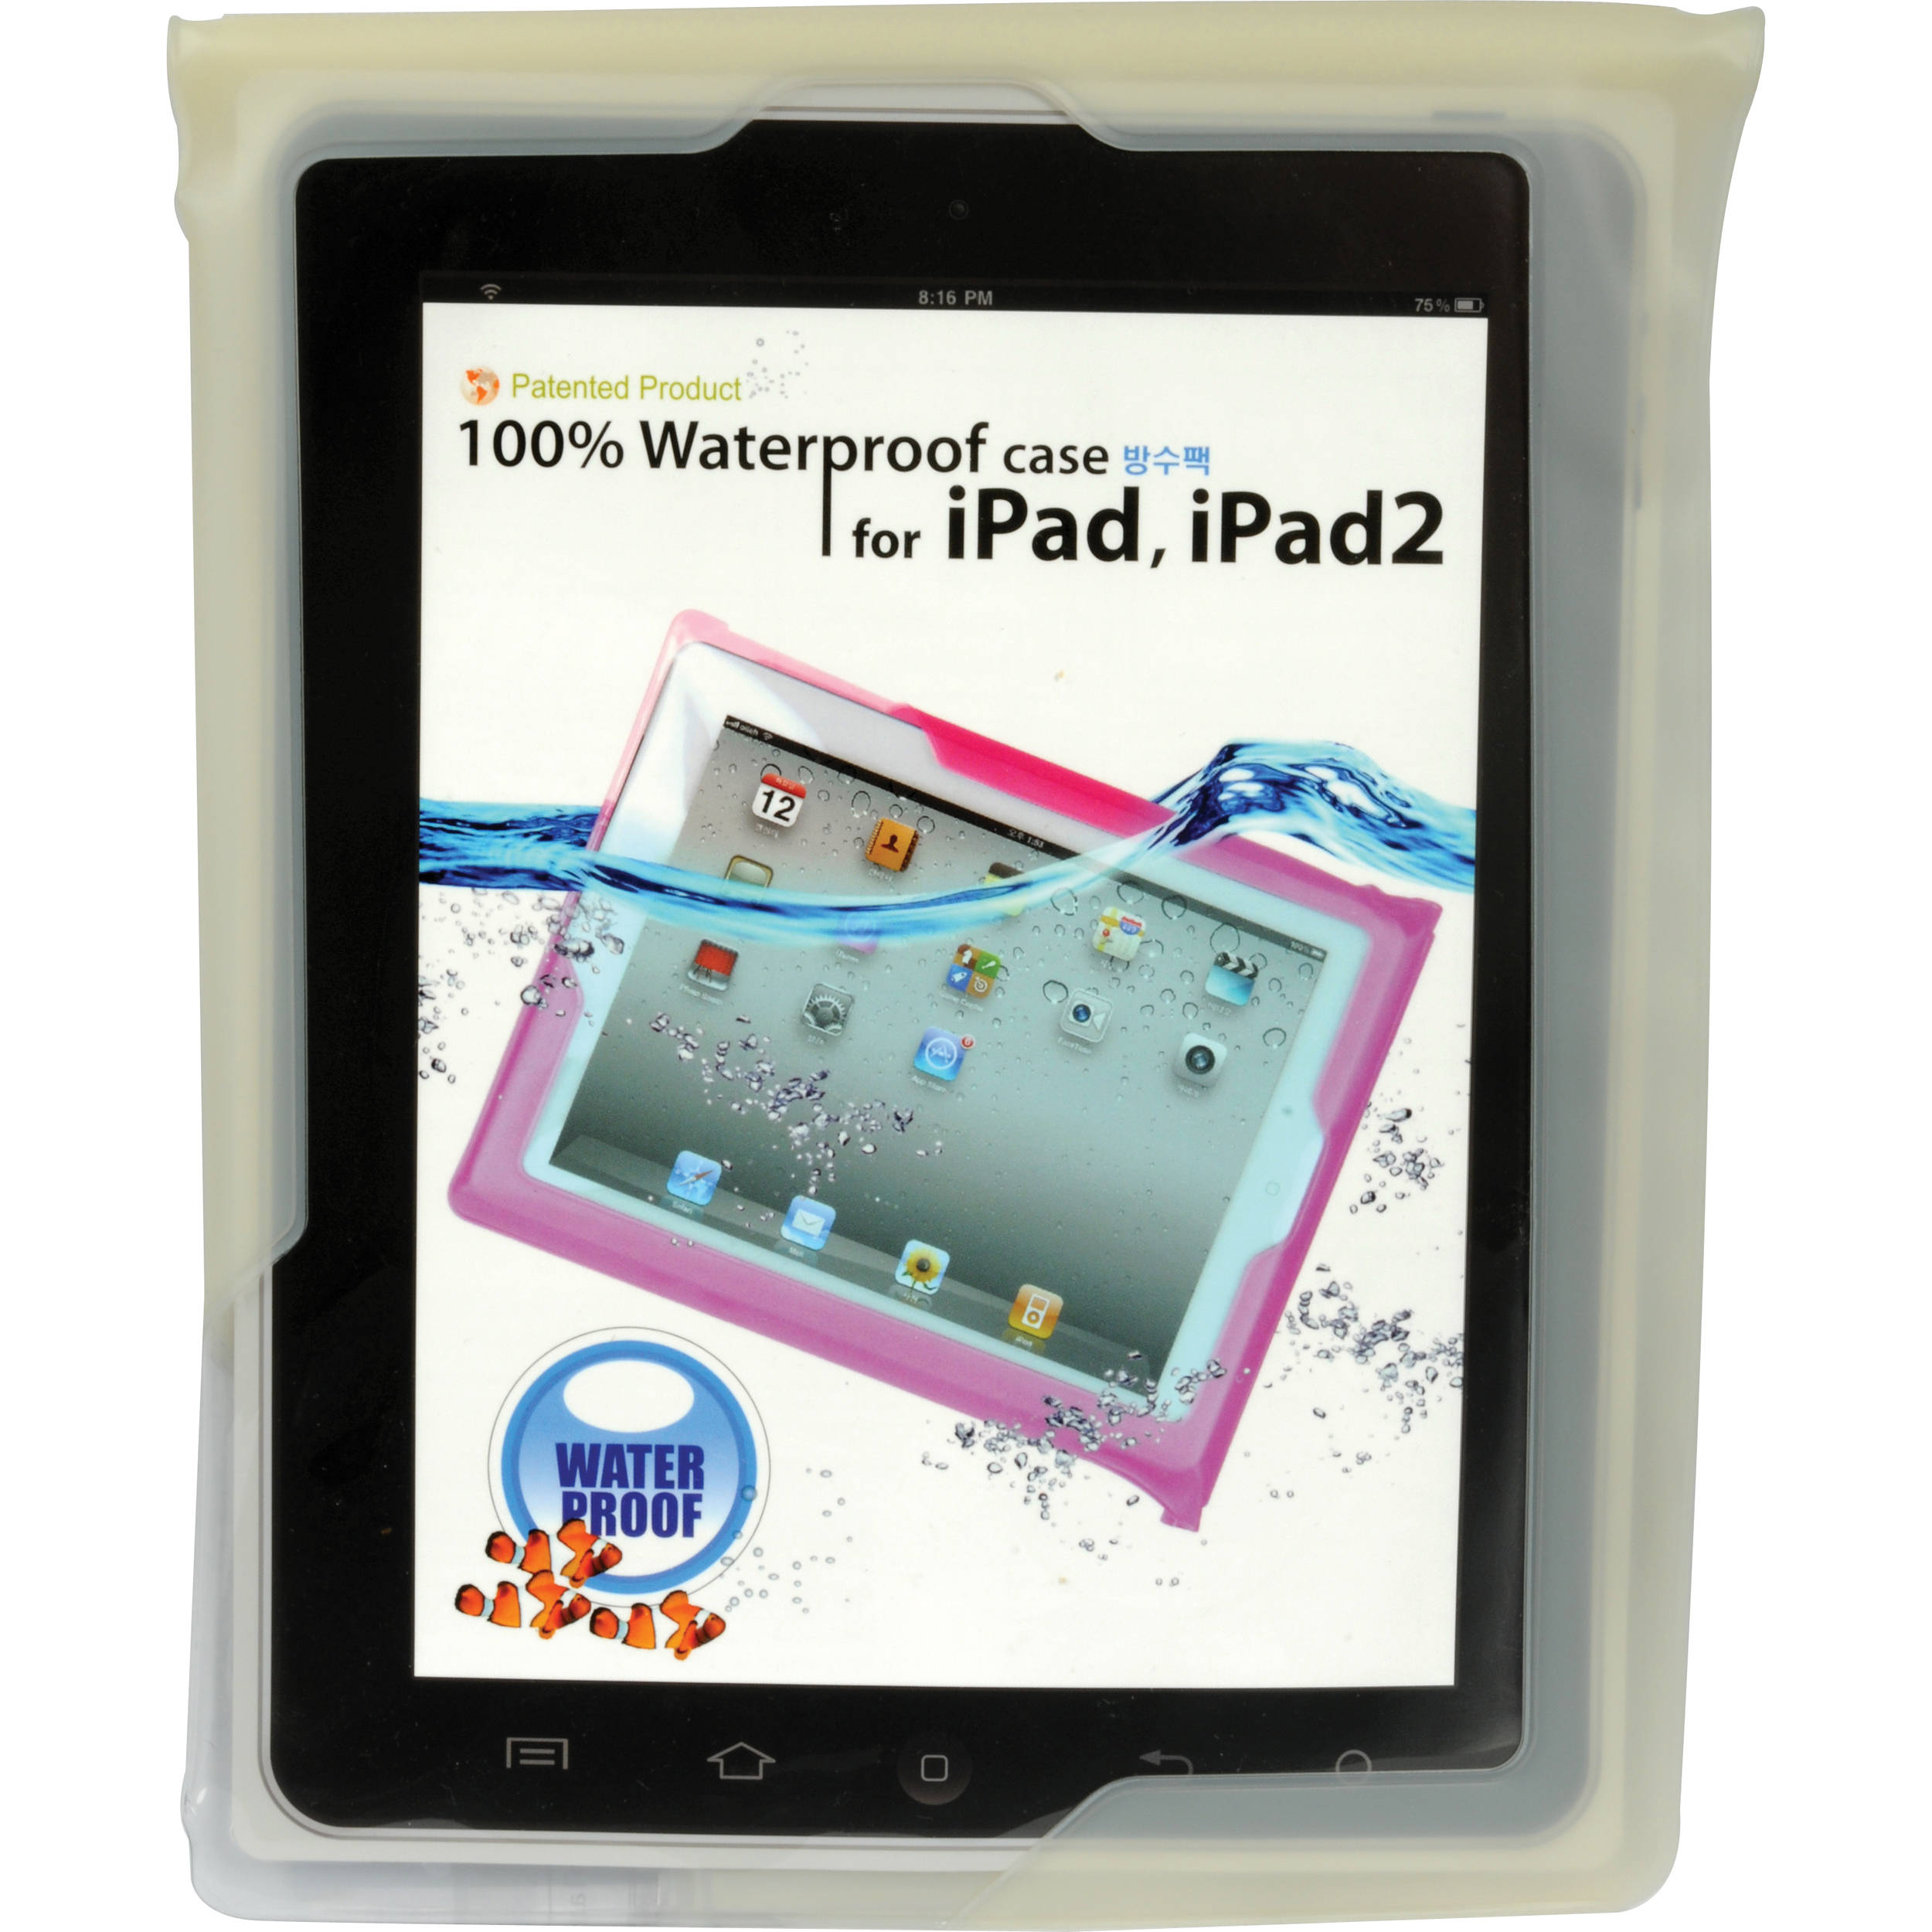 release date a1dba 5803a DiCAPac WPi20 Waterproof Case for Tablet iPads (Off White)